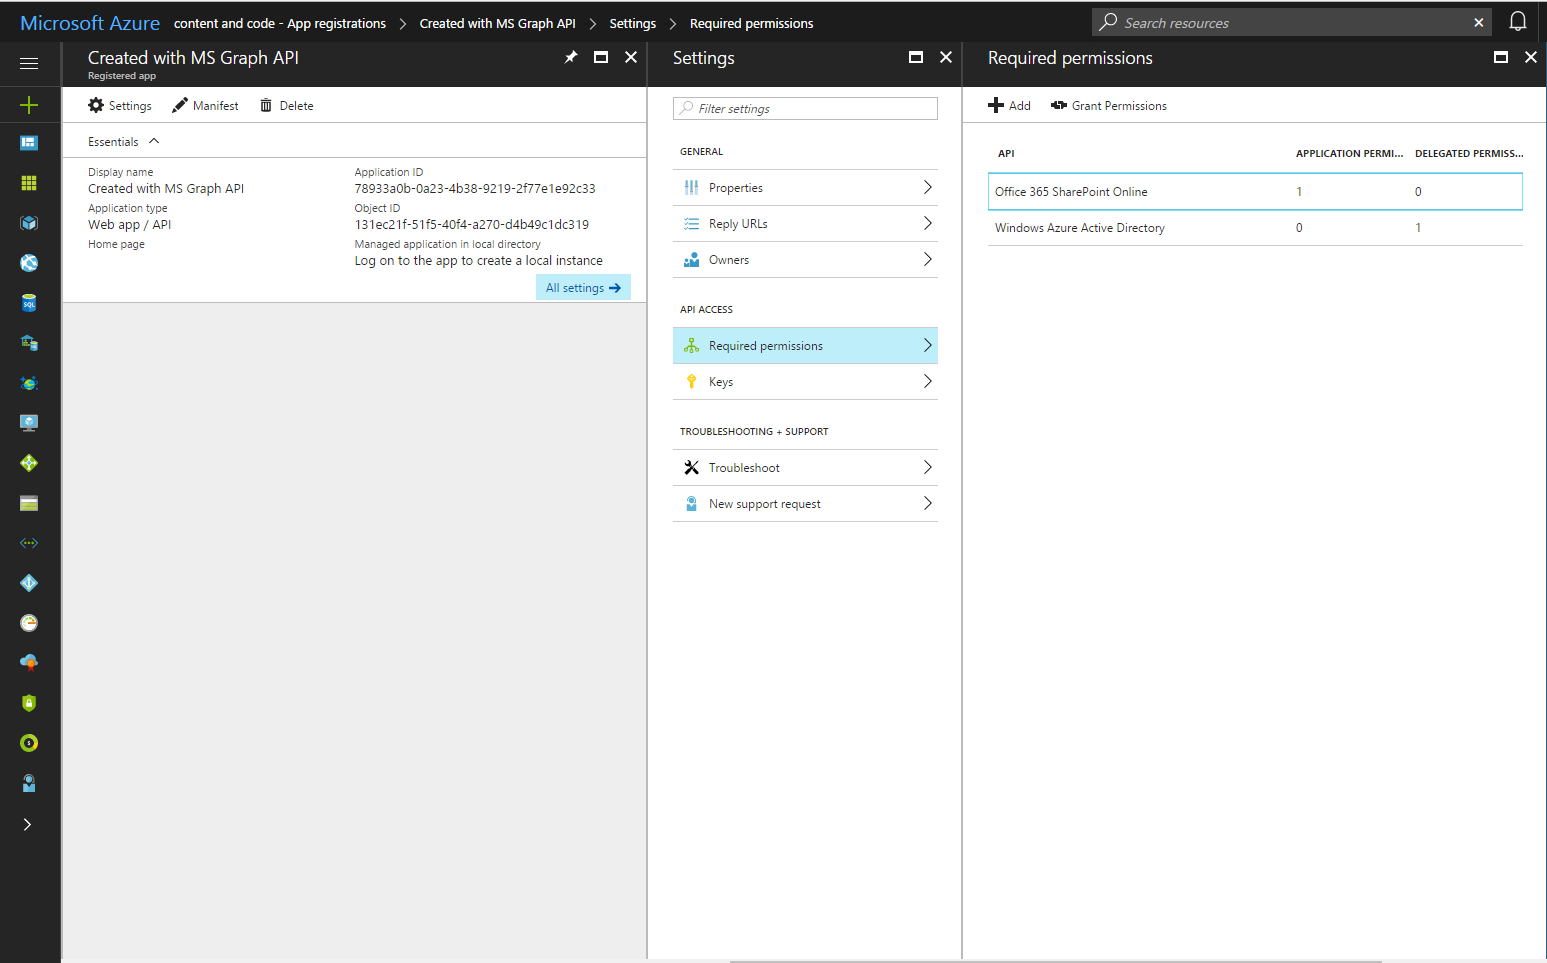 Vardhaman Deshpande: Create Azure AD App Registration with Microsoft